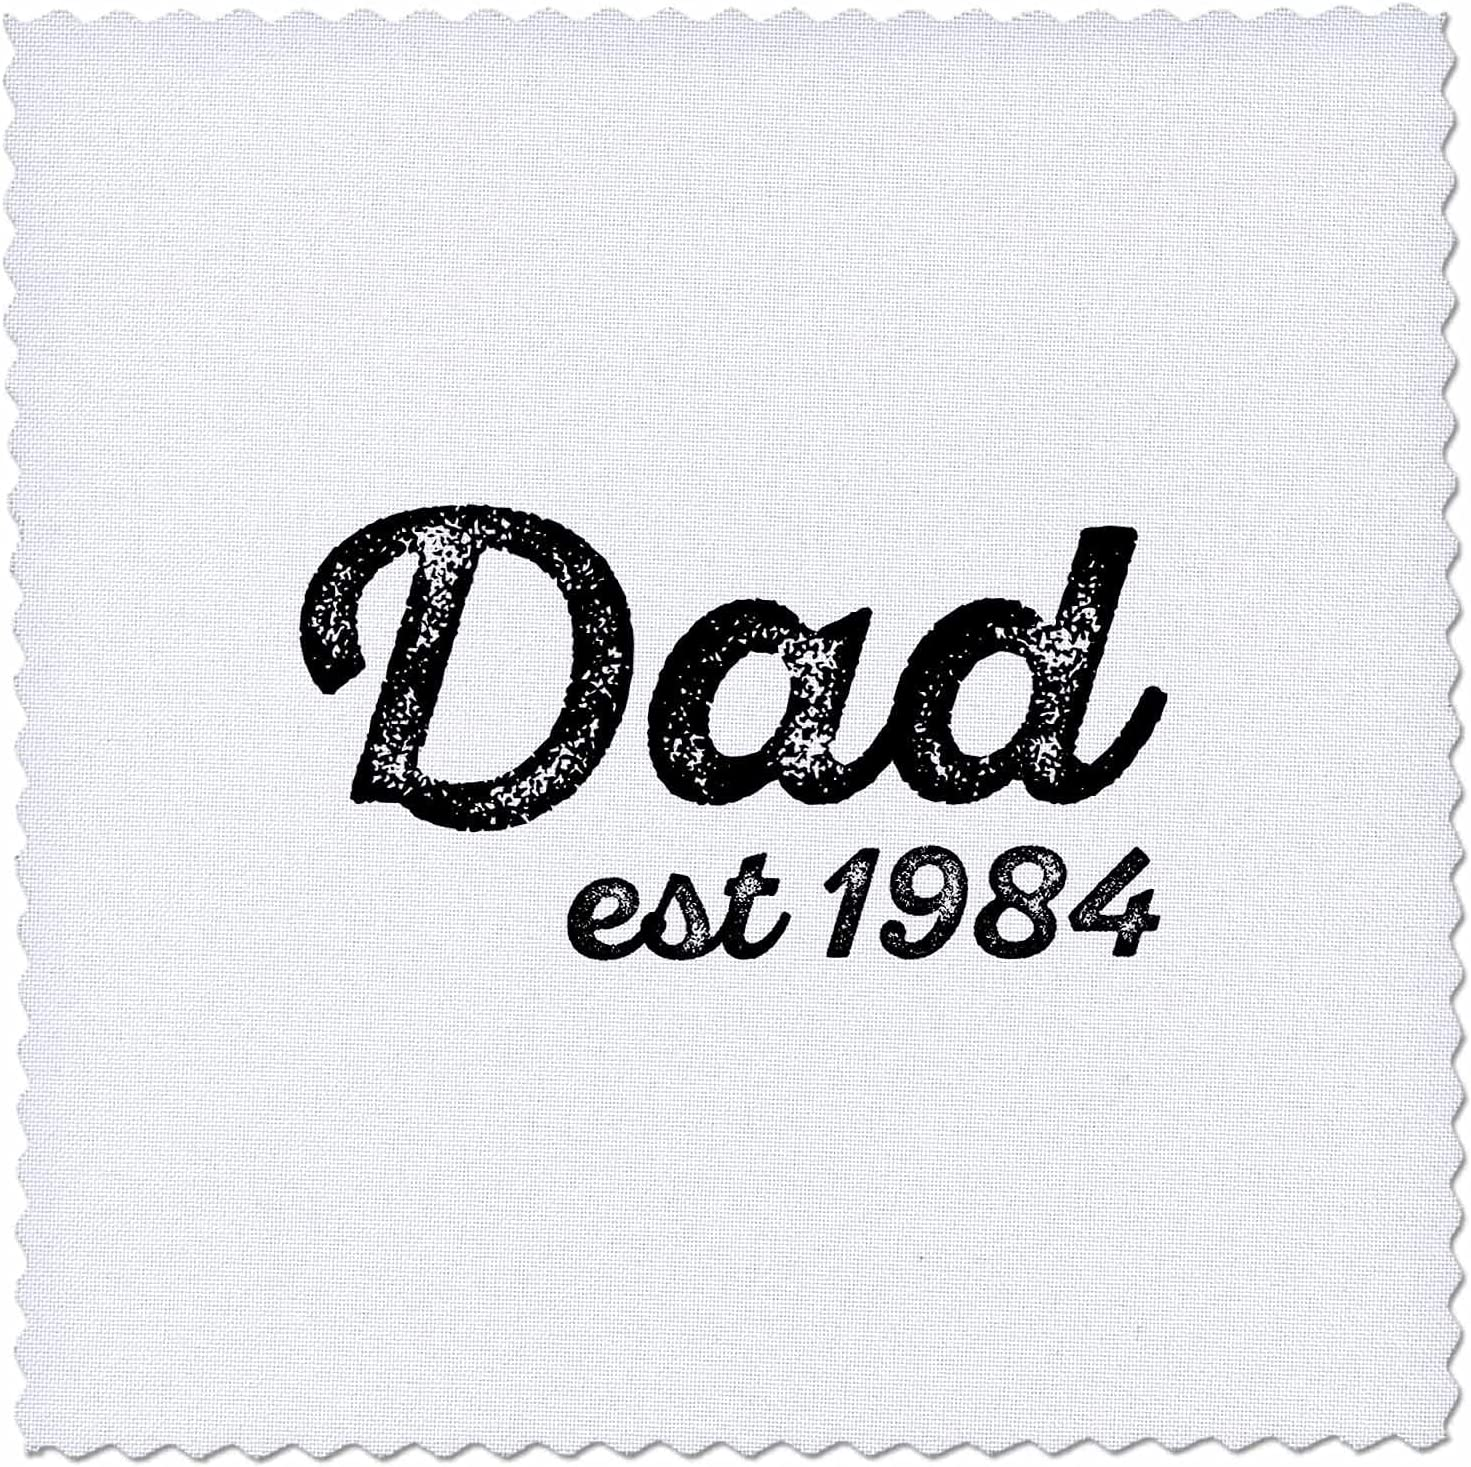 Max 72% OFF 3dRose Dad discount established 1984 distressed cursive on whit lettering